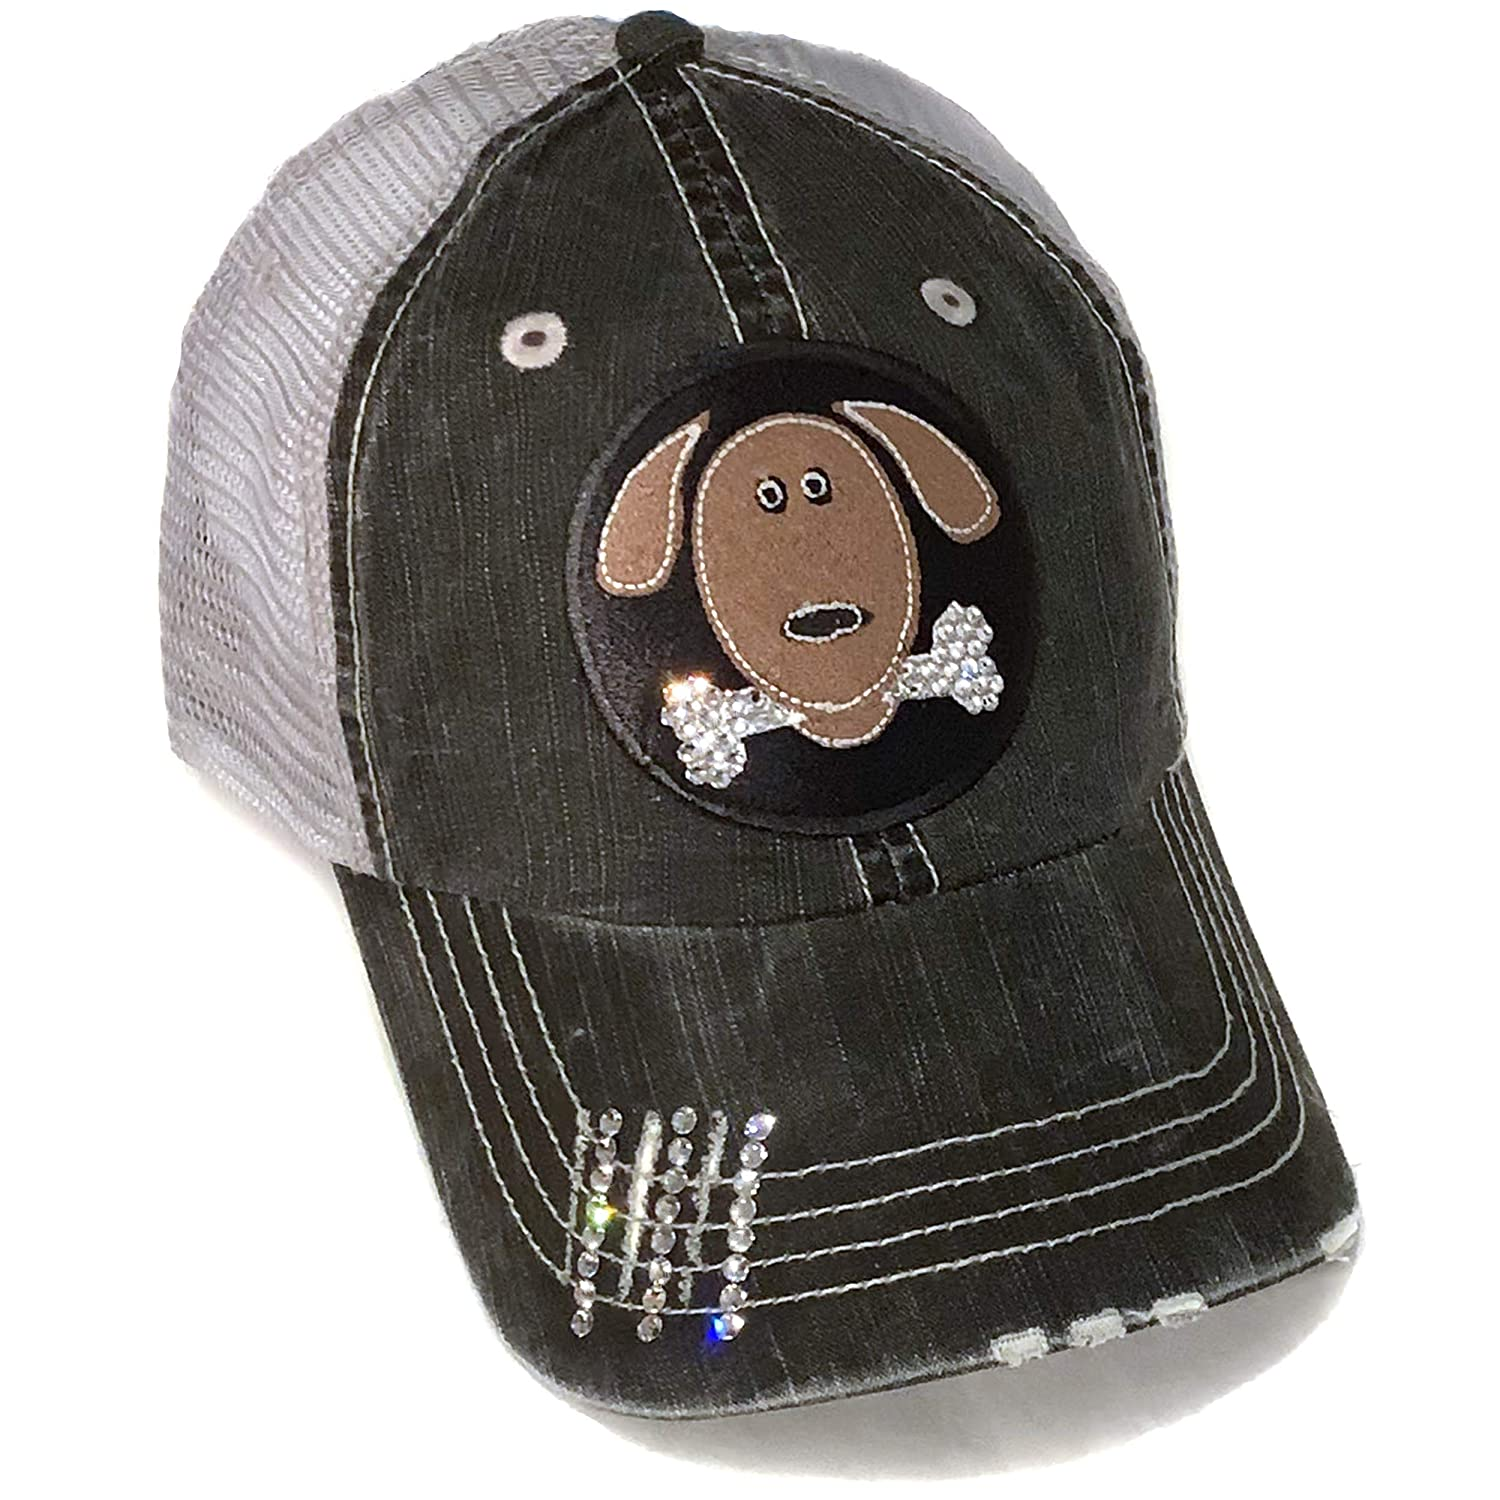 Dog Lover Hat for Women Labrador Mom Gift Crystal Rhinestone Bling Trucker  Cap at Amazon Women s Clothing store  427a1a498be